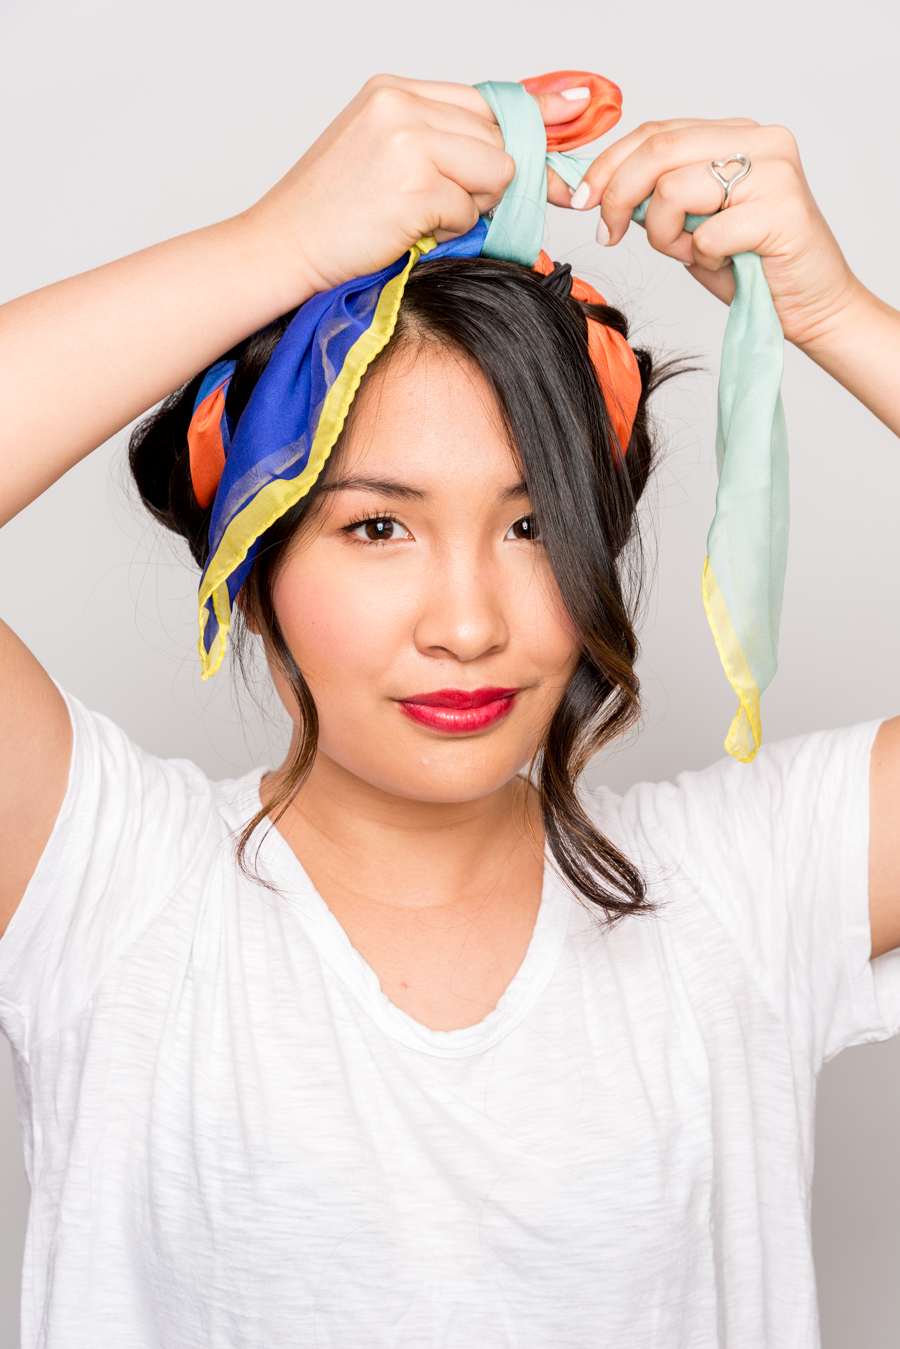 How To Use A Scarf For Stylish Summer Hair スカーフを使った簡単ヘアアレンジ 12